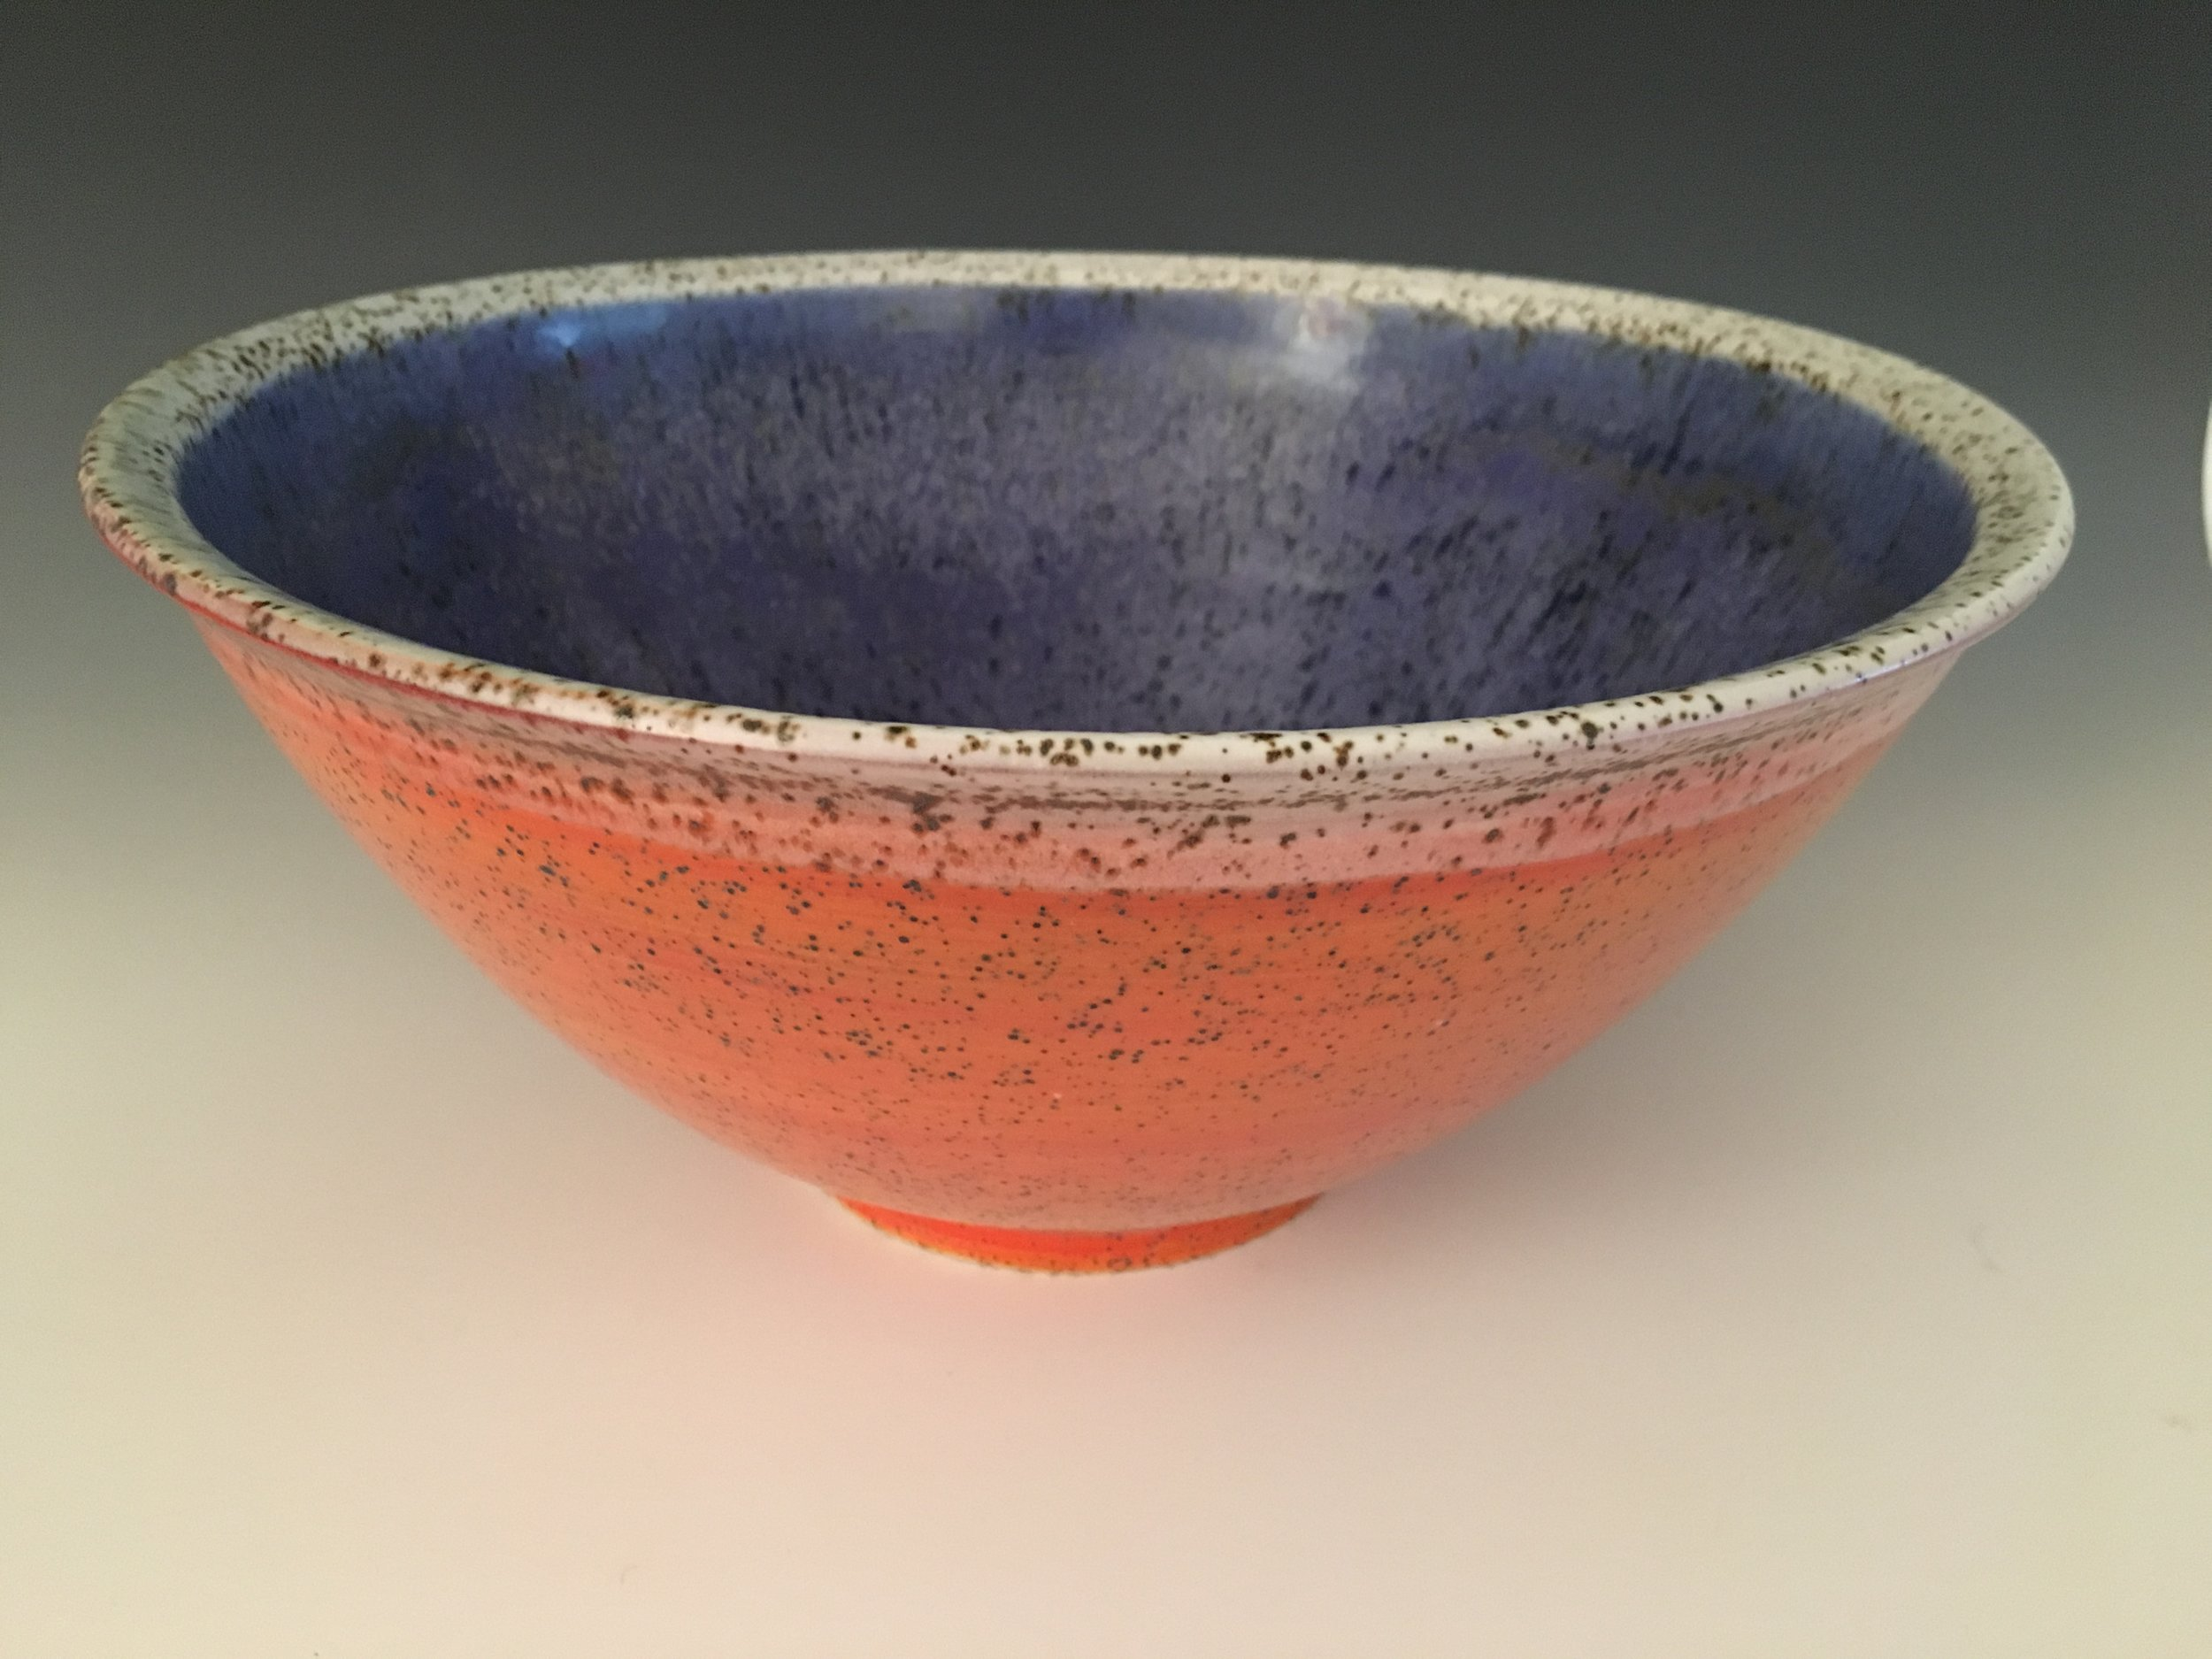 Large Orange Salad Bowl with Cobalt Interior